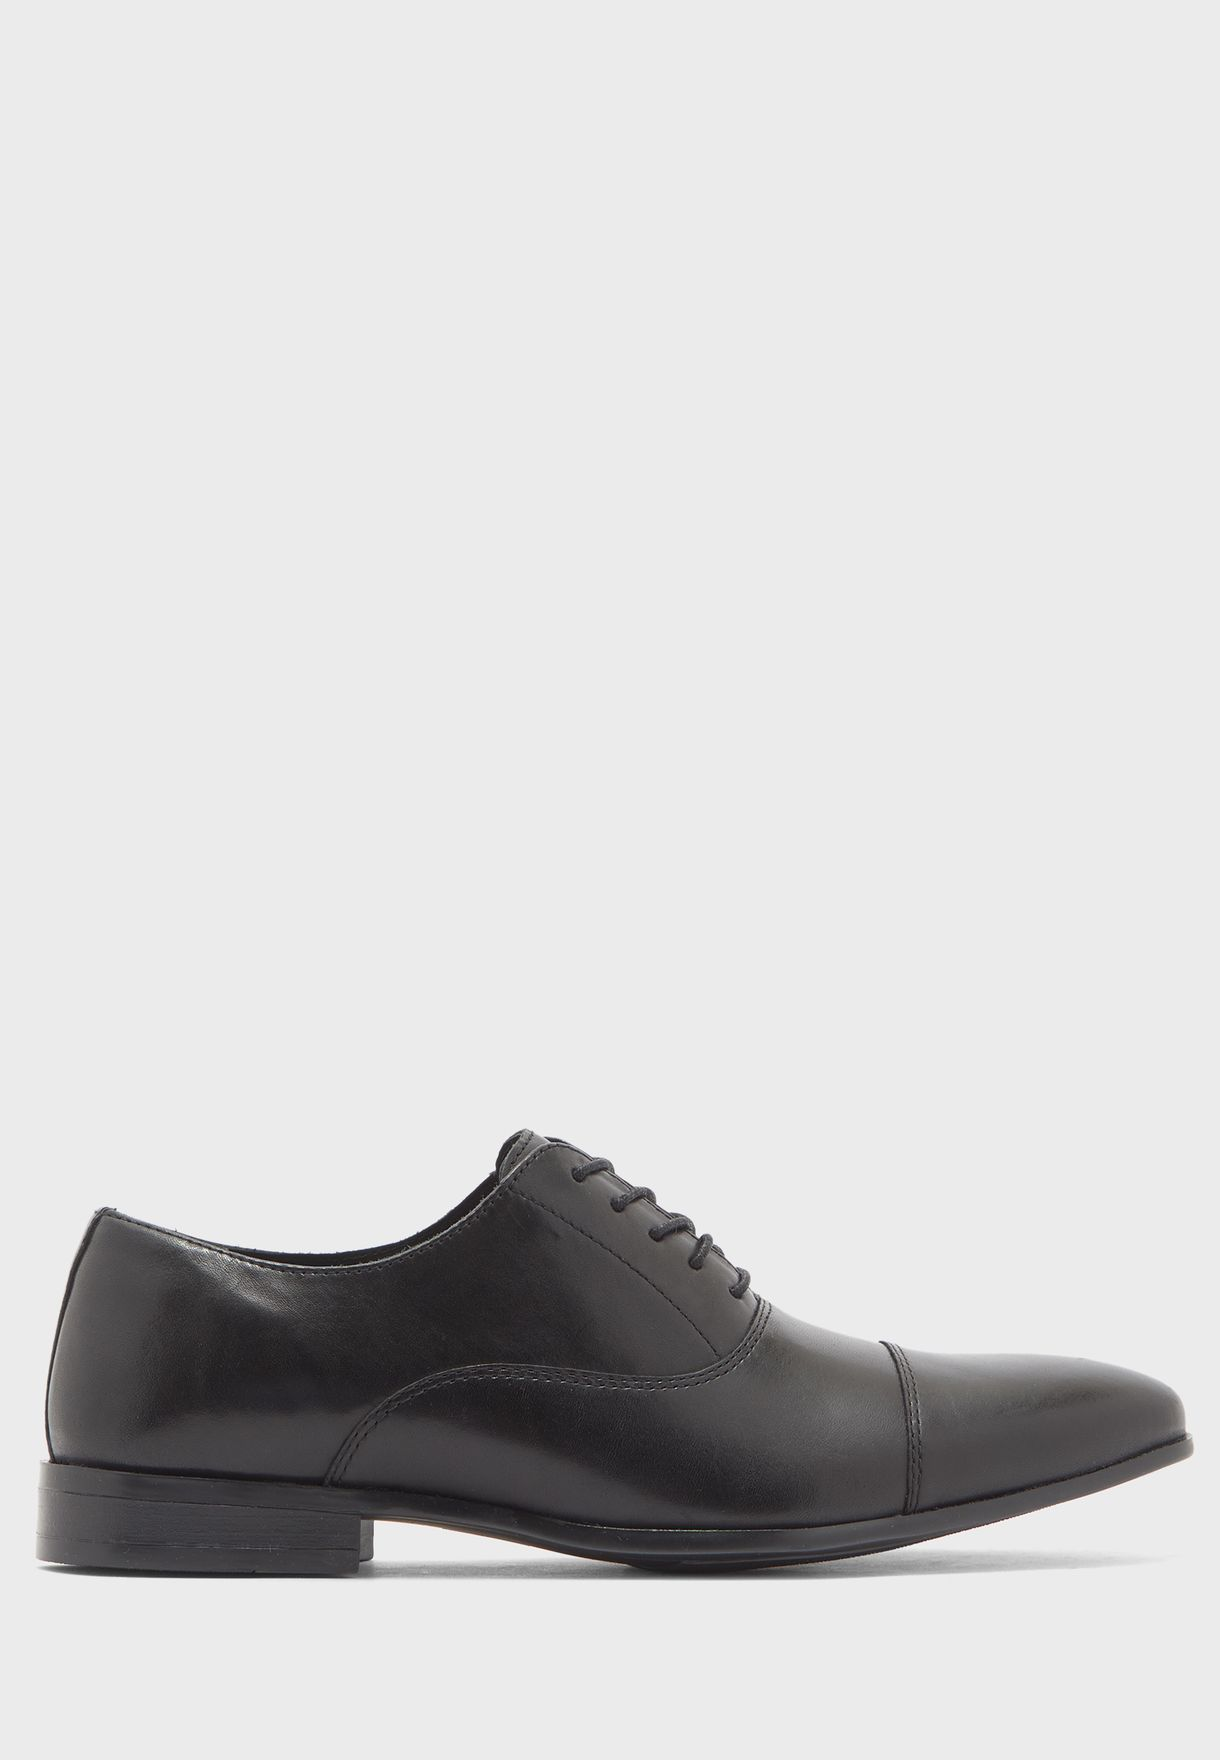 Genuine Leather Oxford Formal Lace Ups